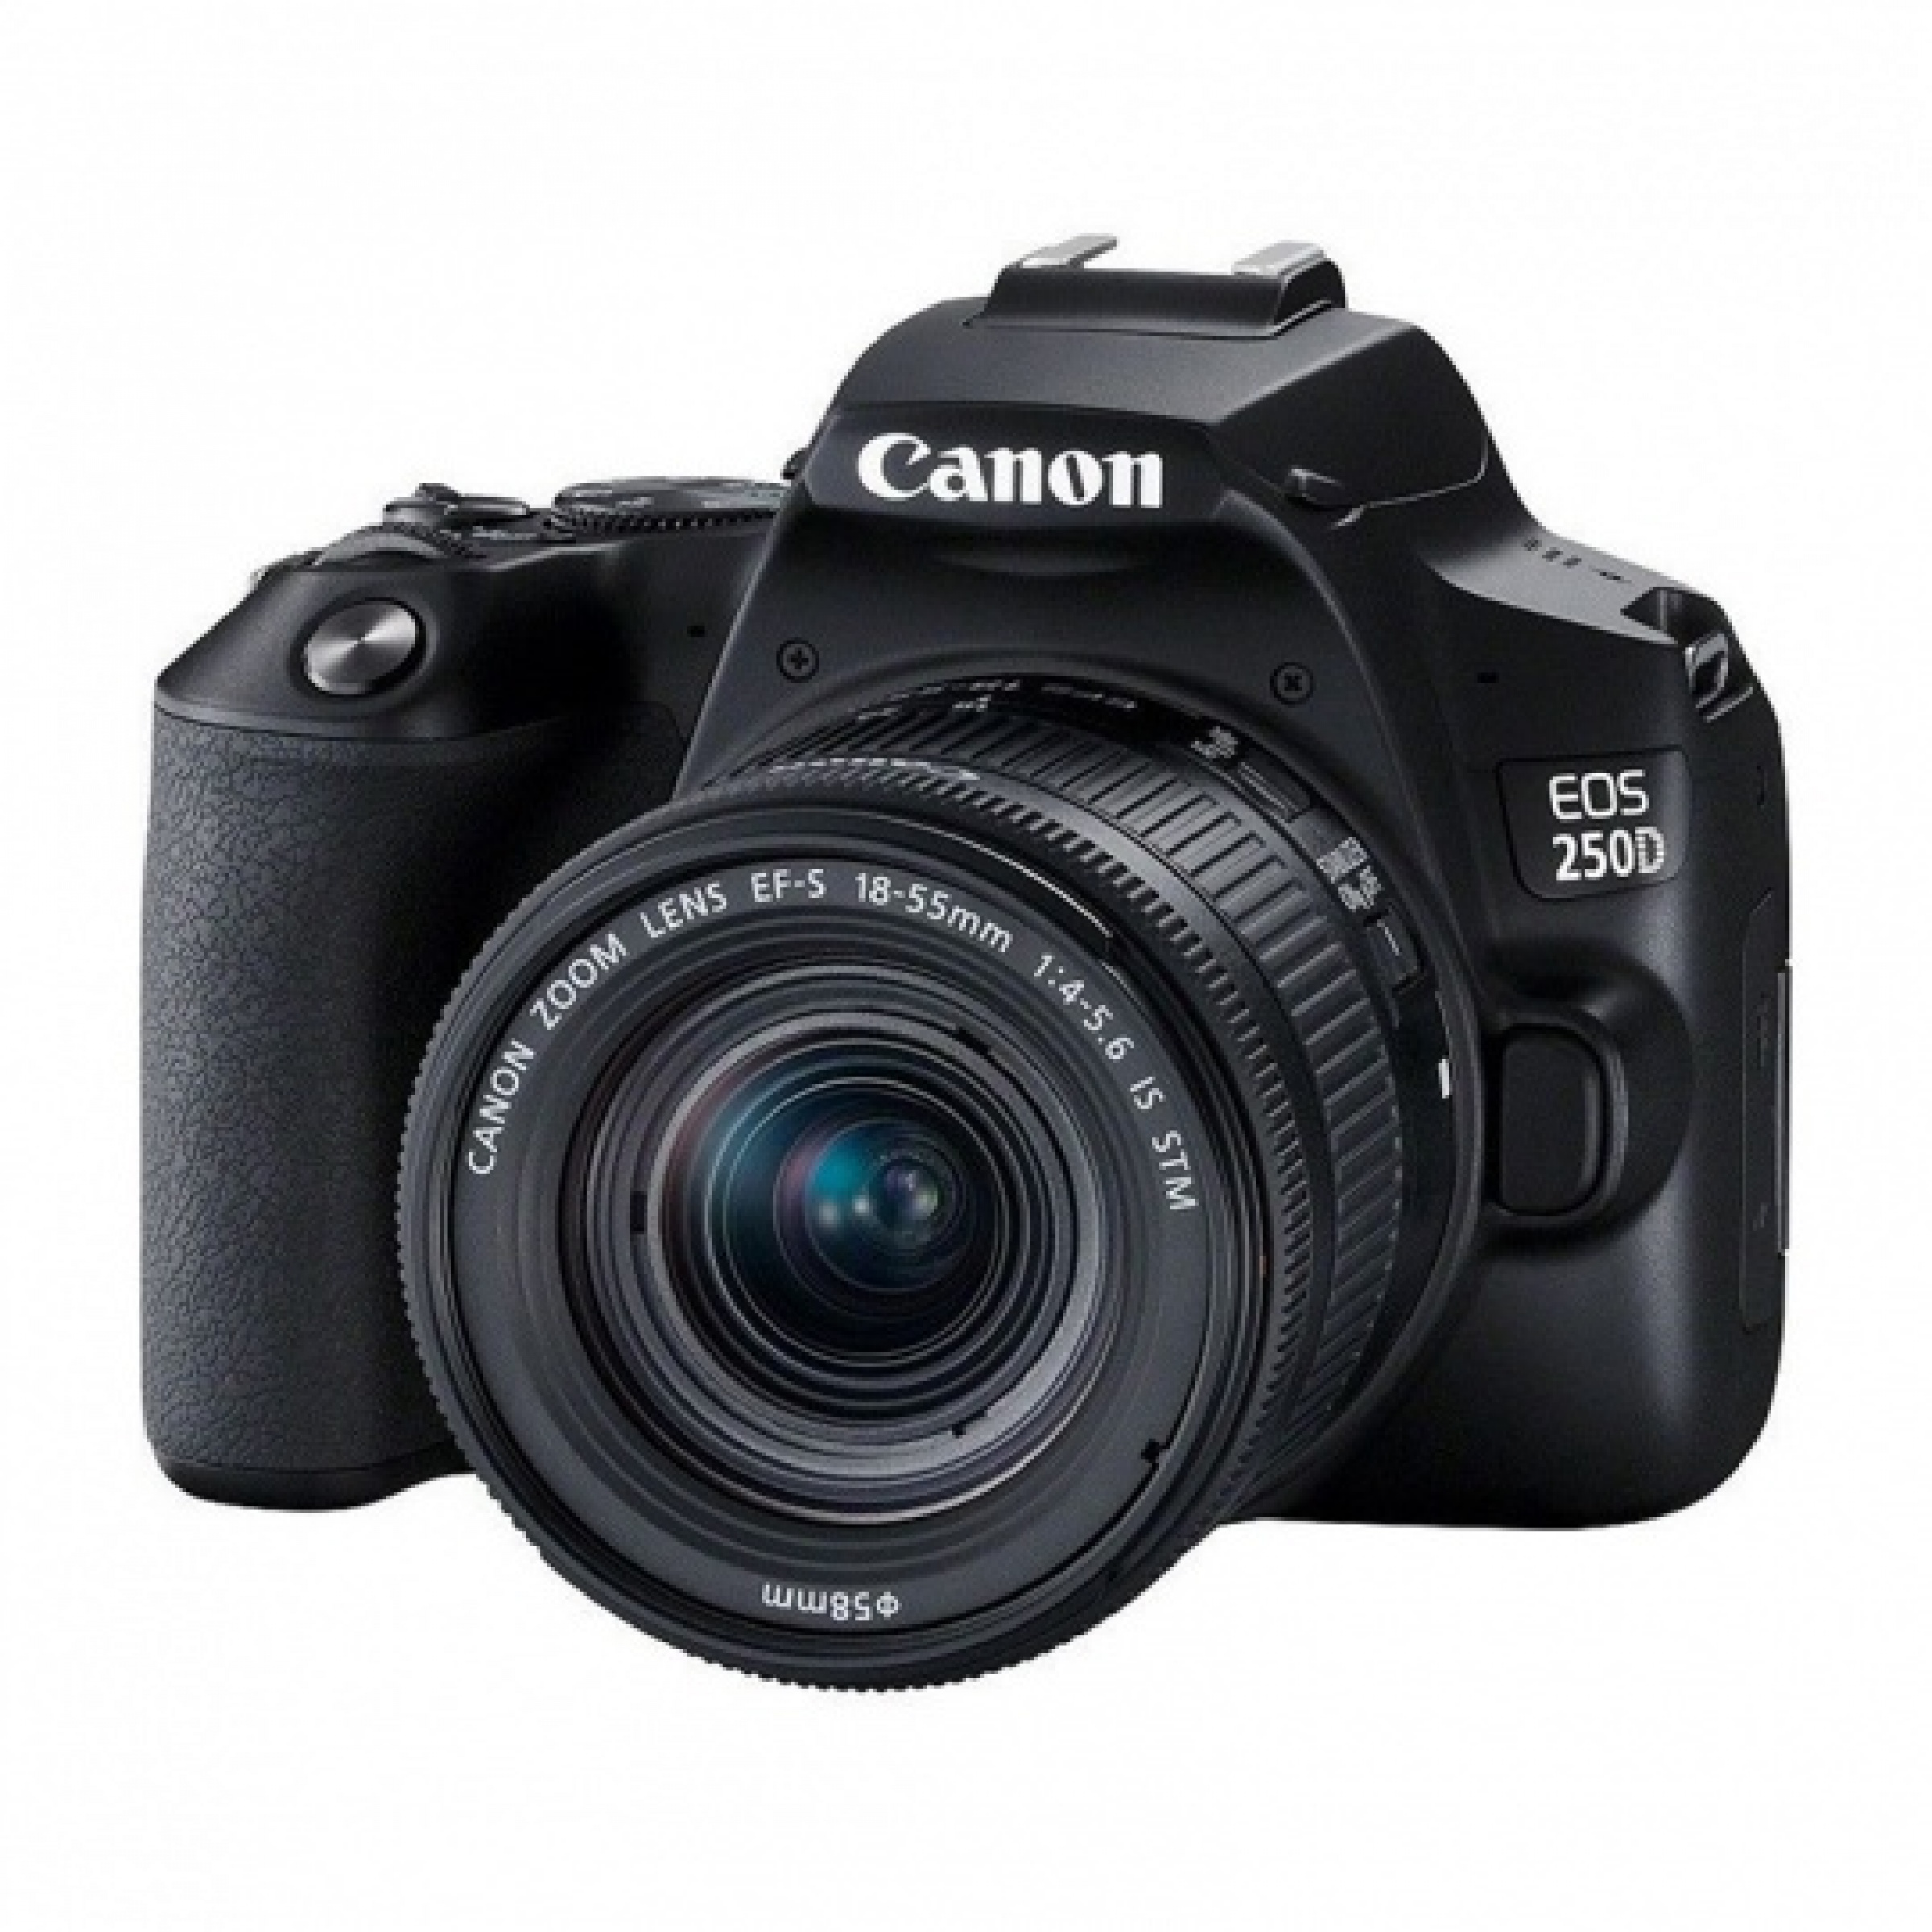 Canon-EOS-250D-BLACK-18-55-IS-STM